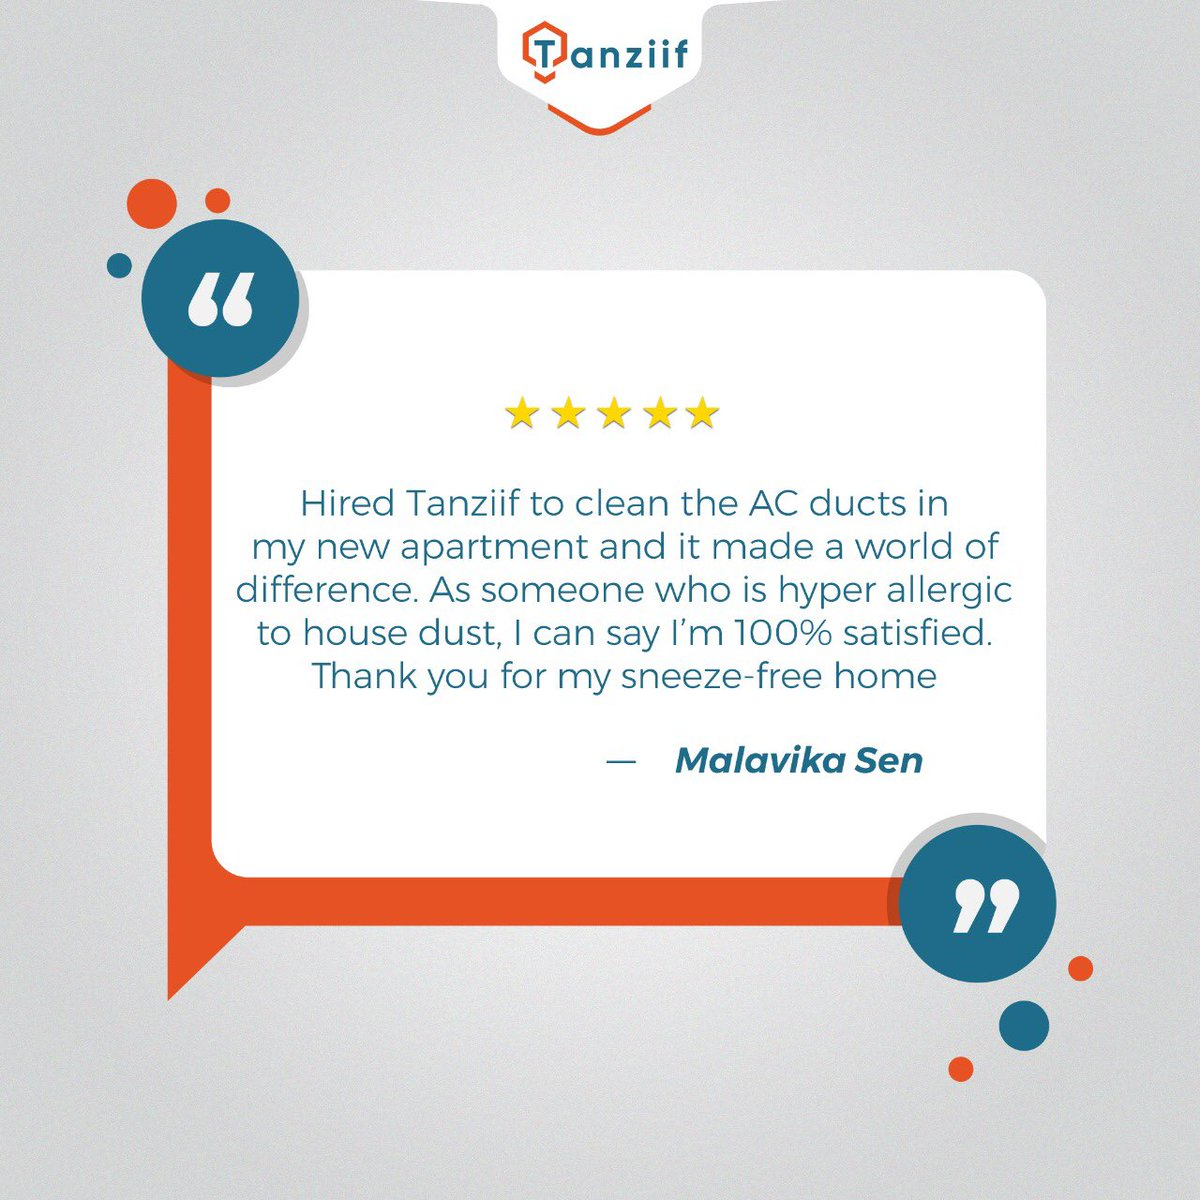 Happy customers make us happy and drive us to promote healthier surroundings.  Book a cleaning service with us today!  Call: 800-8269443 (TANZIIF)  #CustomerFeedback #Testimonials #happyclient #TanziifAEpic.twitter.com/Yf9H9gL1o4